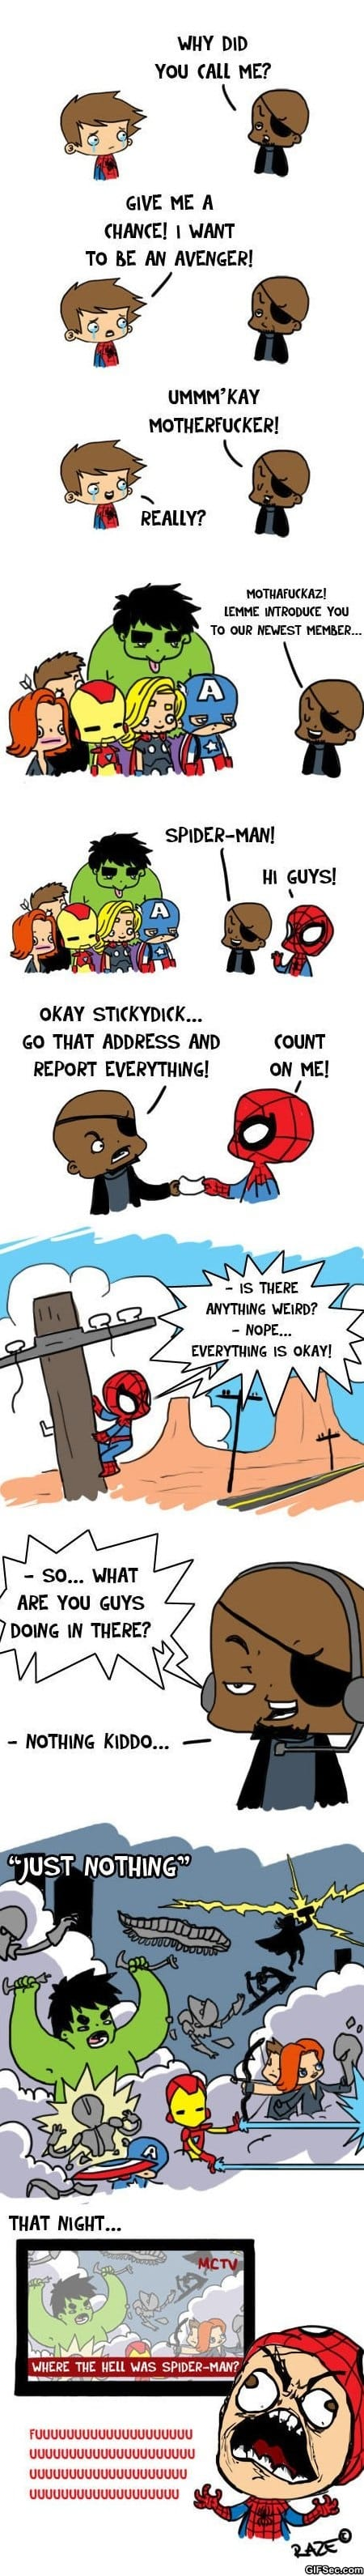 funny-avengers-and-spiderman